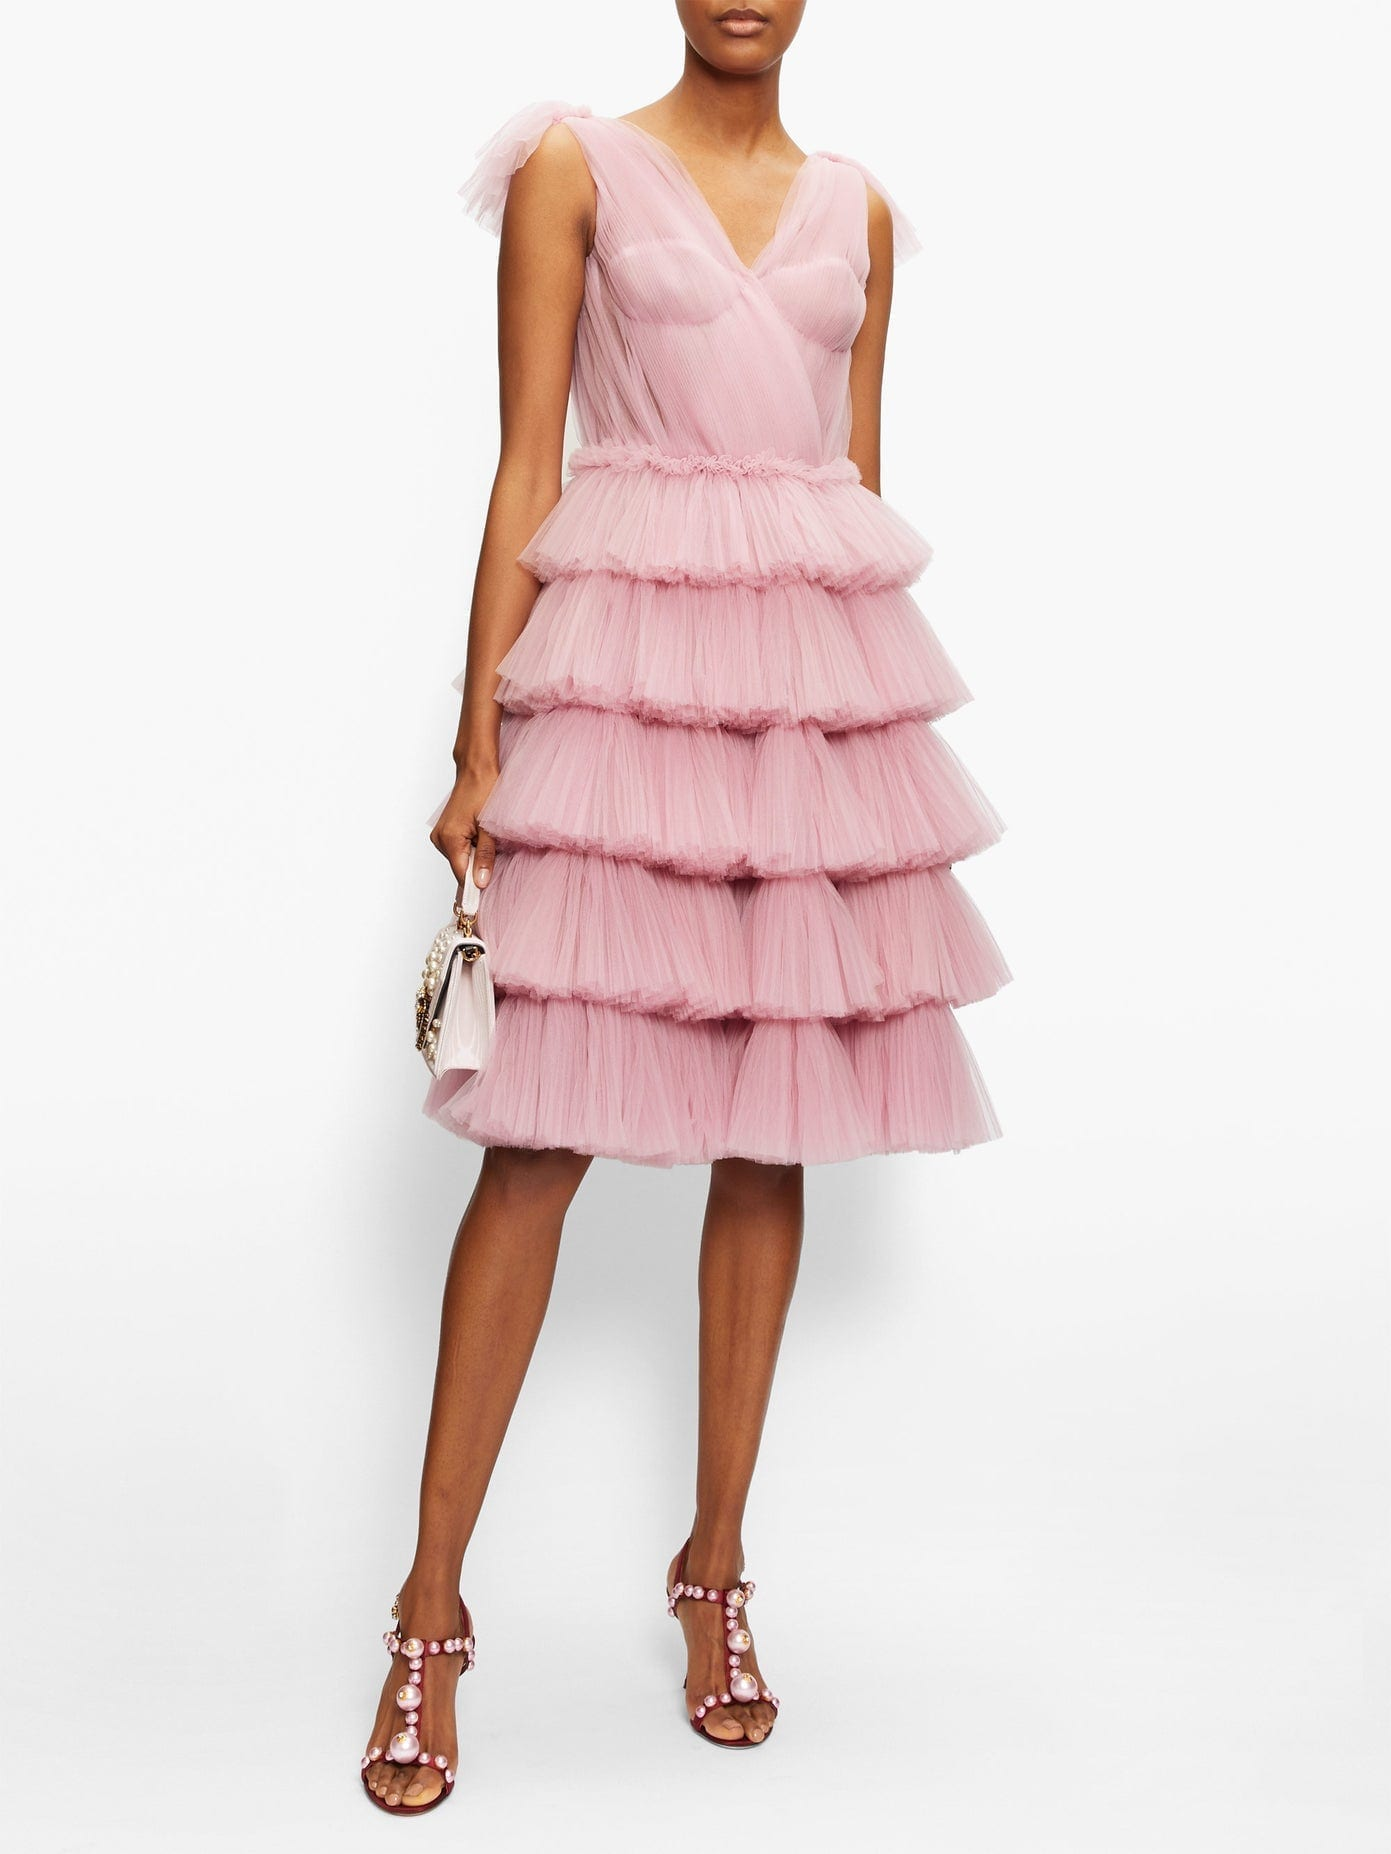 DOLCE & GABBANA Tiered Tulle Dress